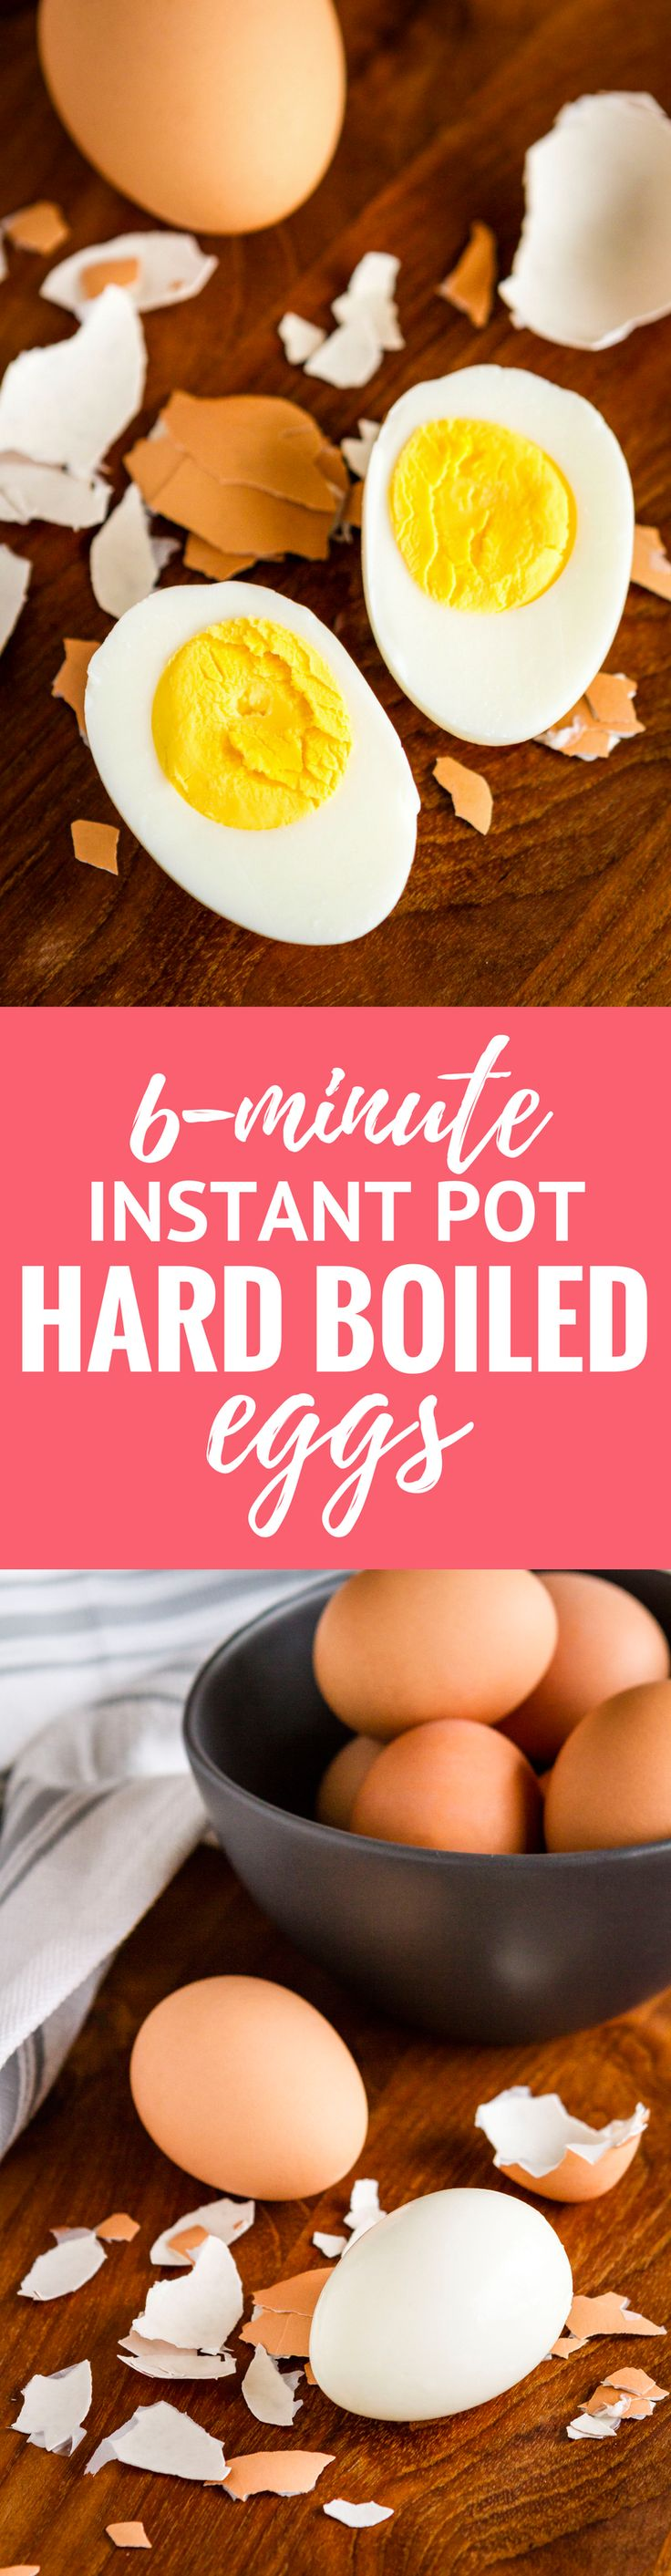 Instant Pot Hard Boiled Eggs -- these Instant Pot eggs turn out *amazing* every time! They're easy to peel, perfectly cooked and never have those icky green yolks... This is the perfect recipe for learning how to use your new electric pressure cooker! | unsophisticook.com